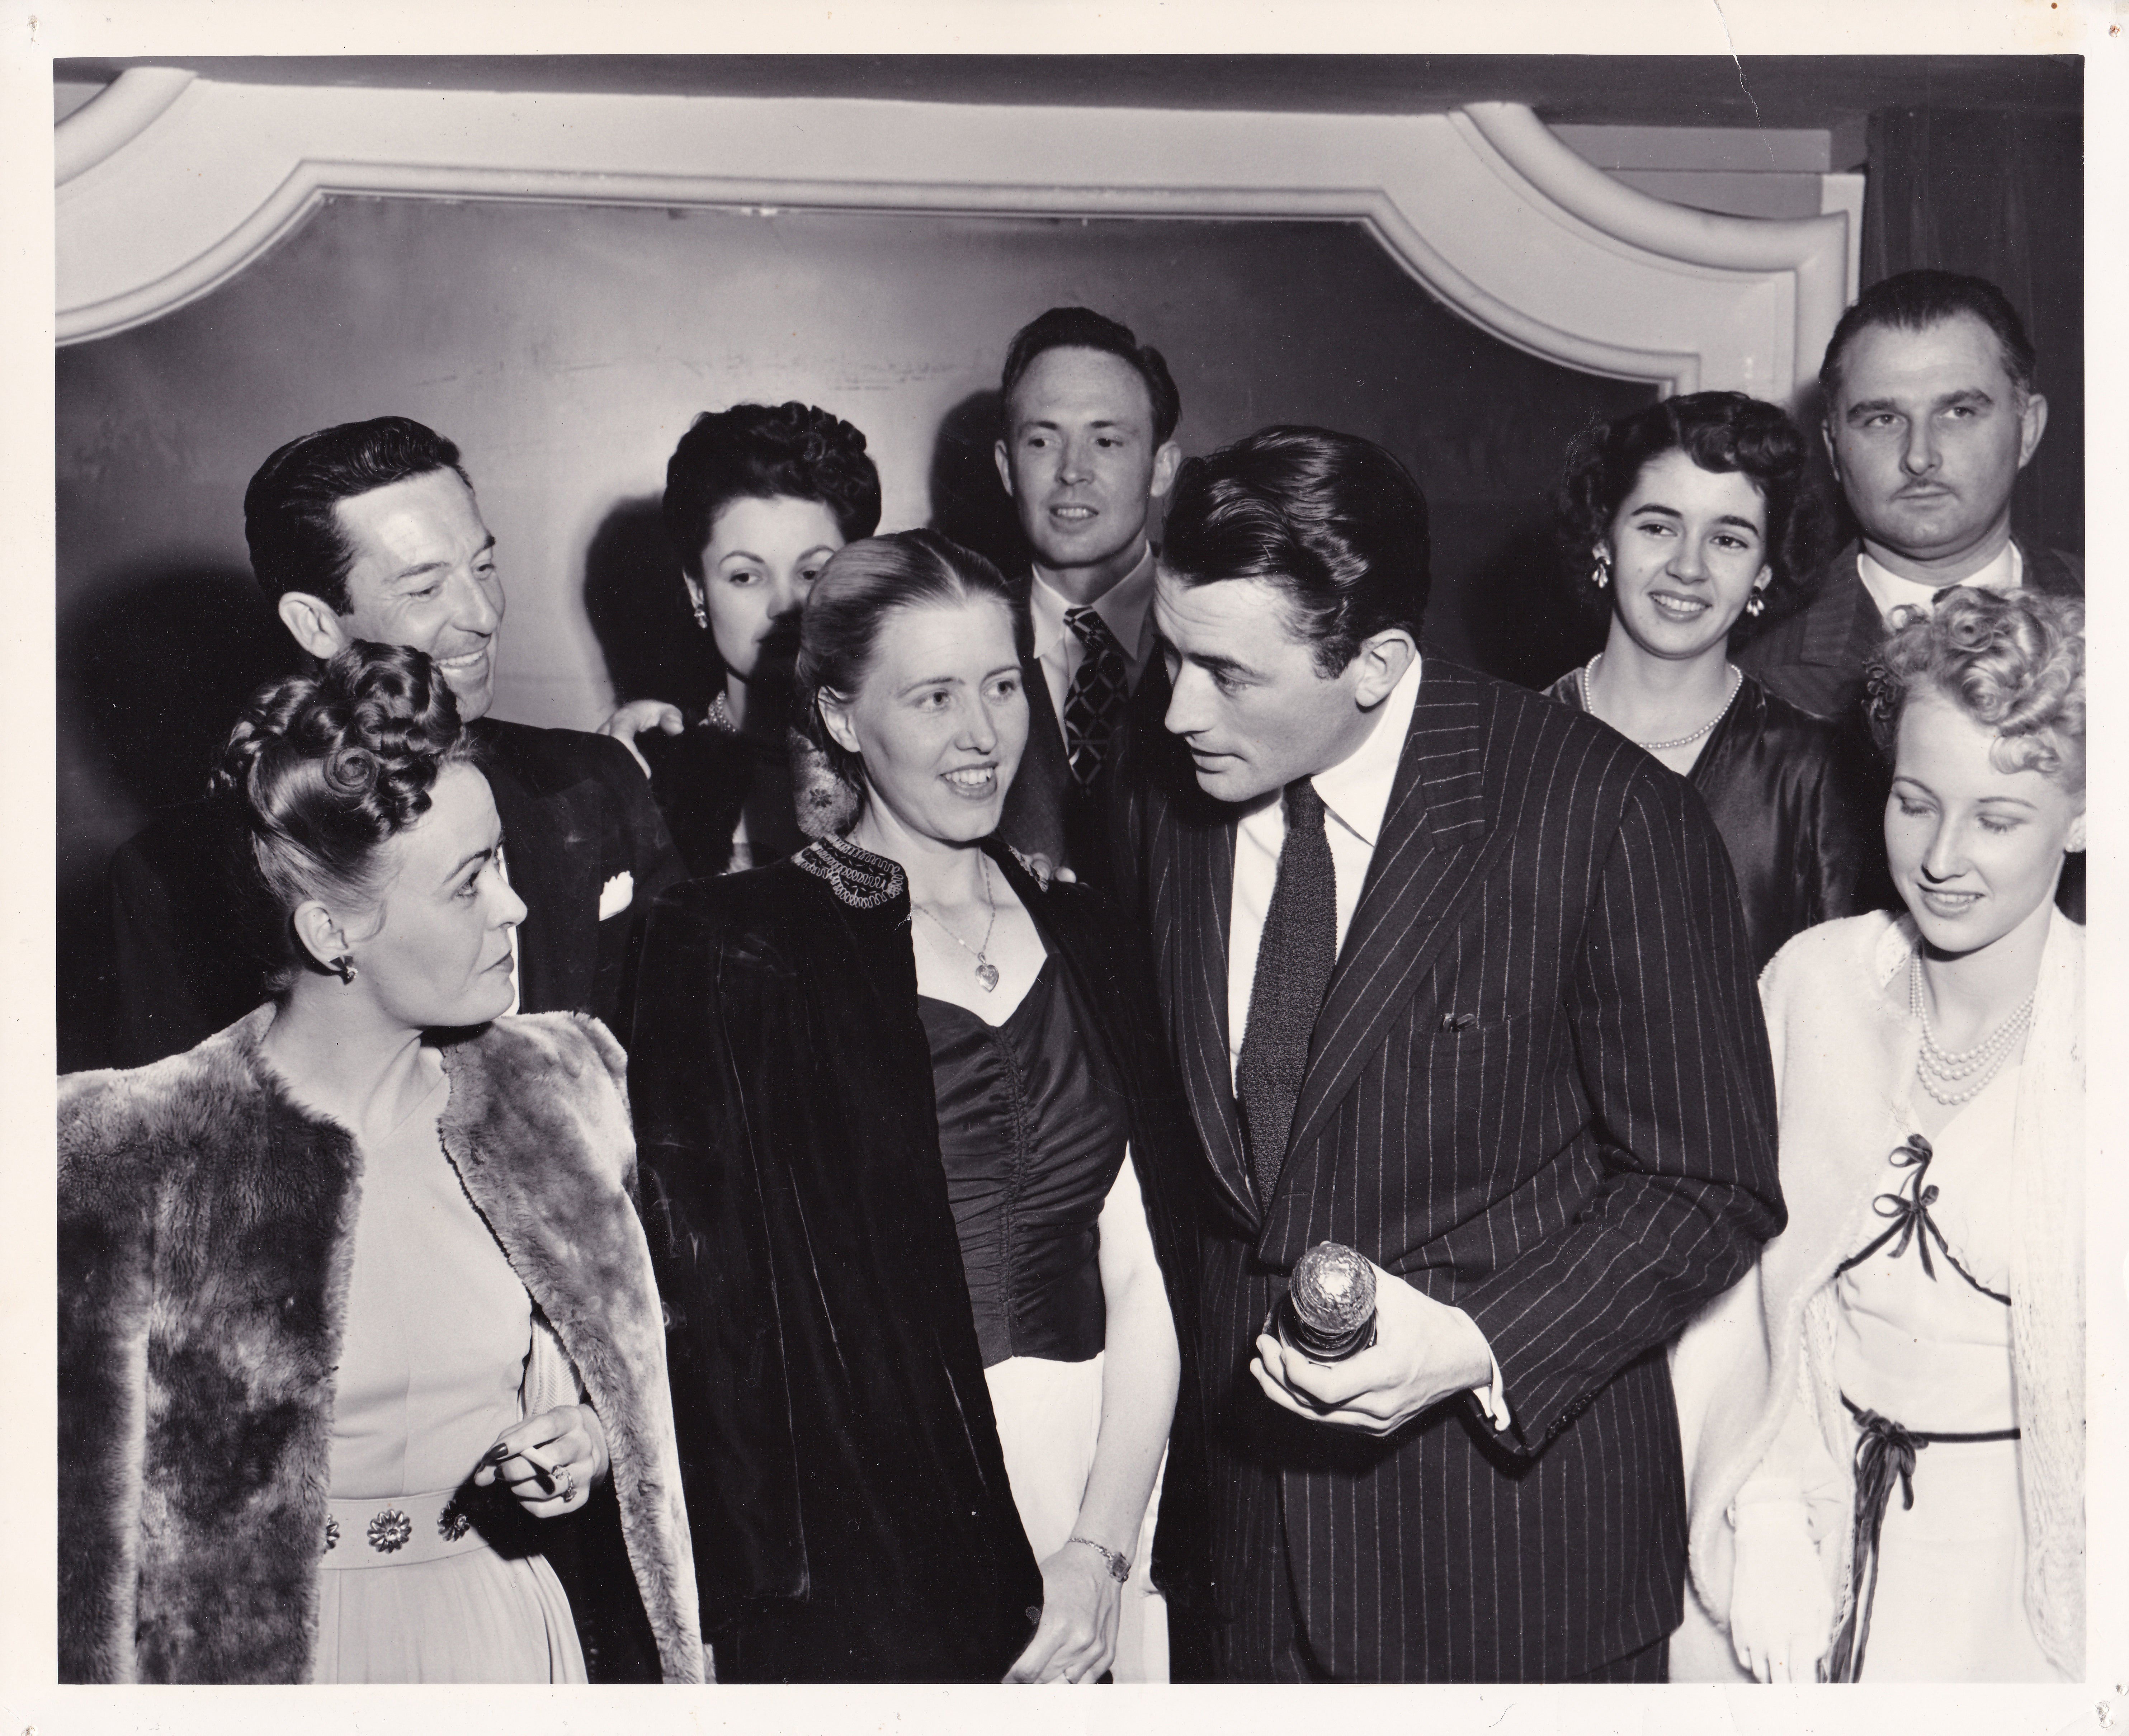 Gregory Peck at the 1947 Golden Globe Awards with this Golden Globe as Best Actor